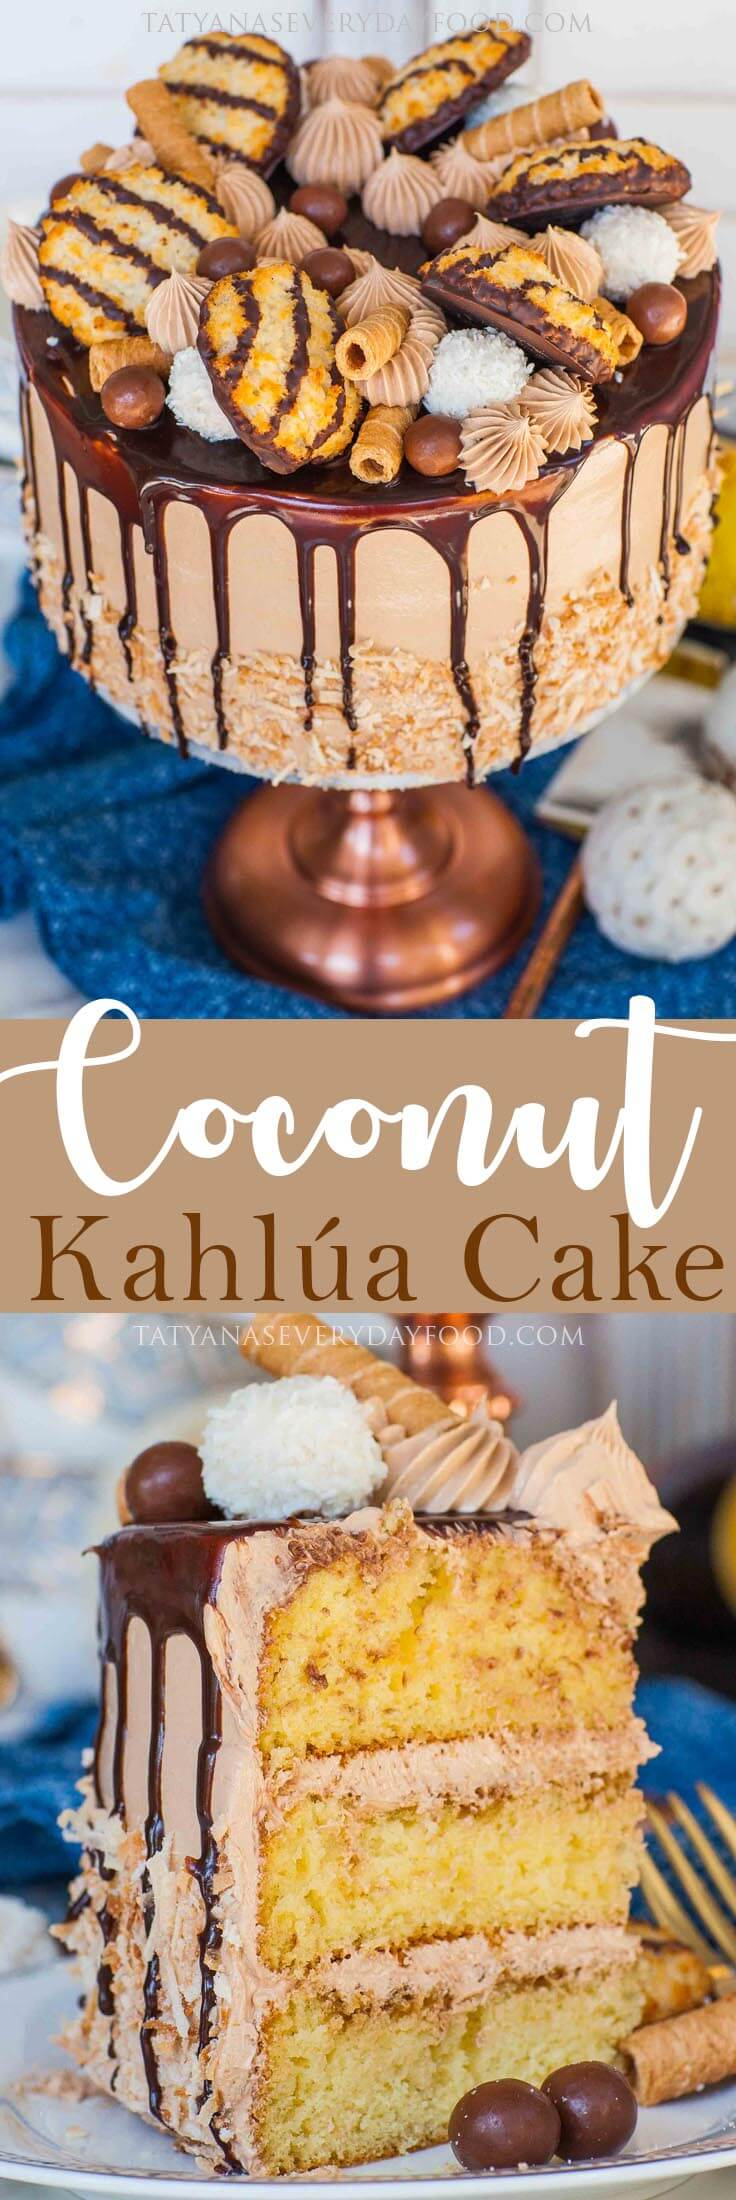 Coconut Kahlua Cake video recipe